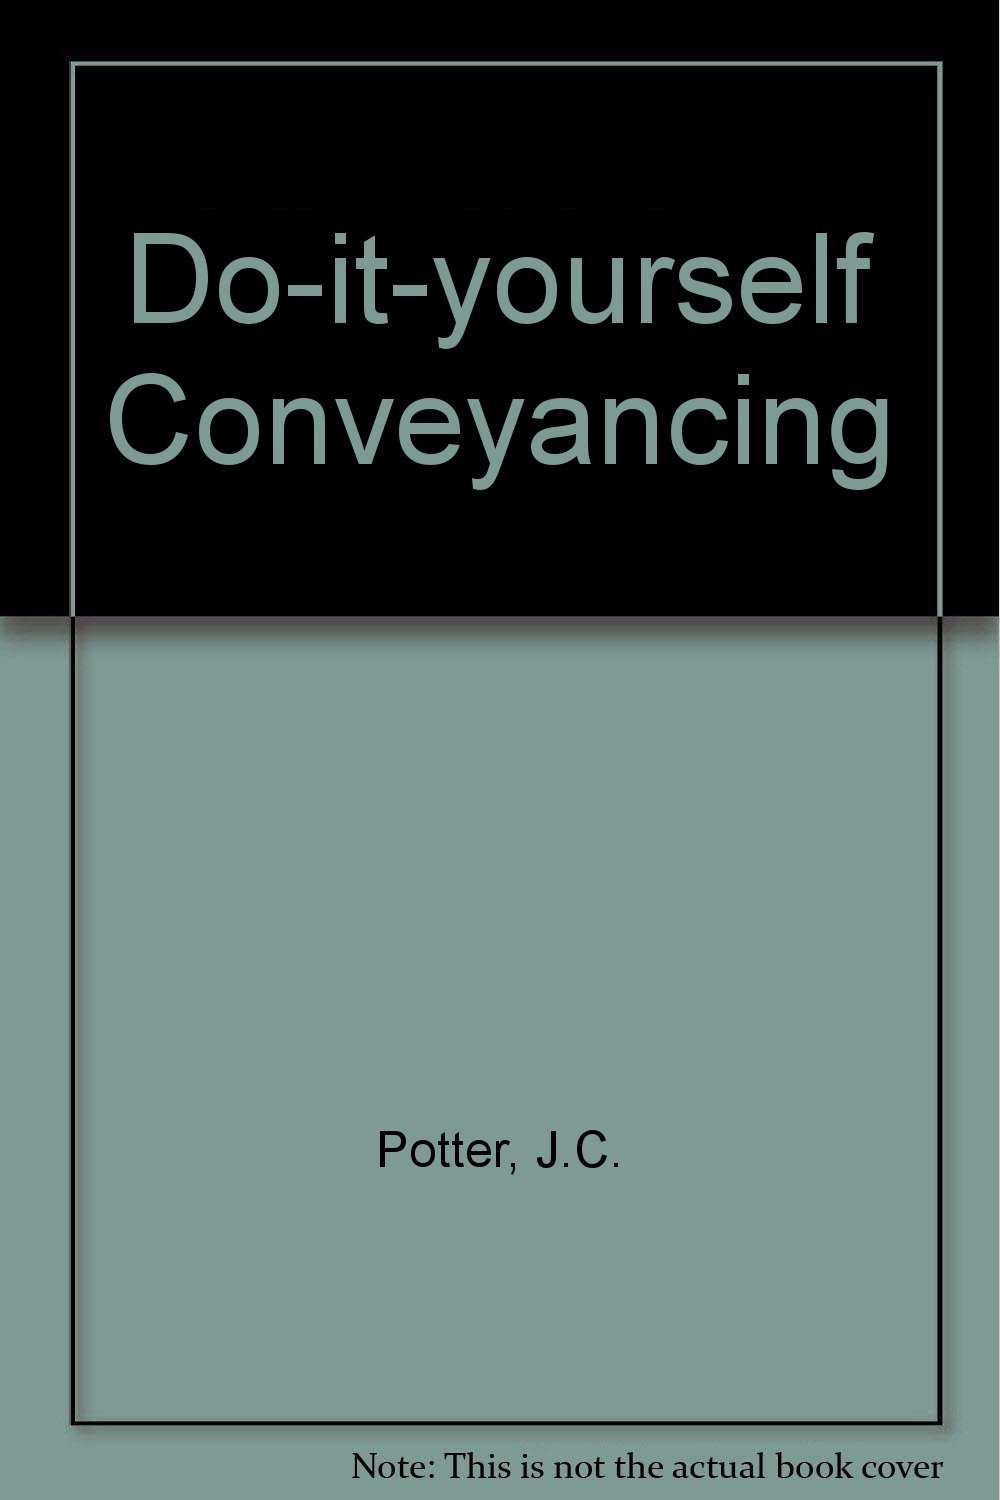 Do it yourself conveyancing amazon jc potter do it yourself conveyancing amazon jc potter 9780907061953 books solutioingenieria Images